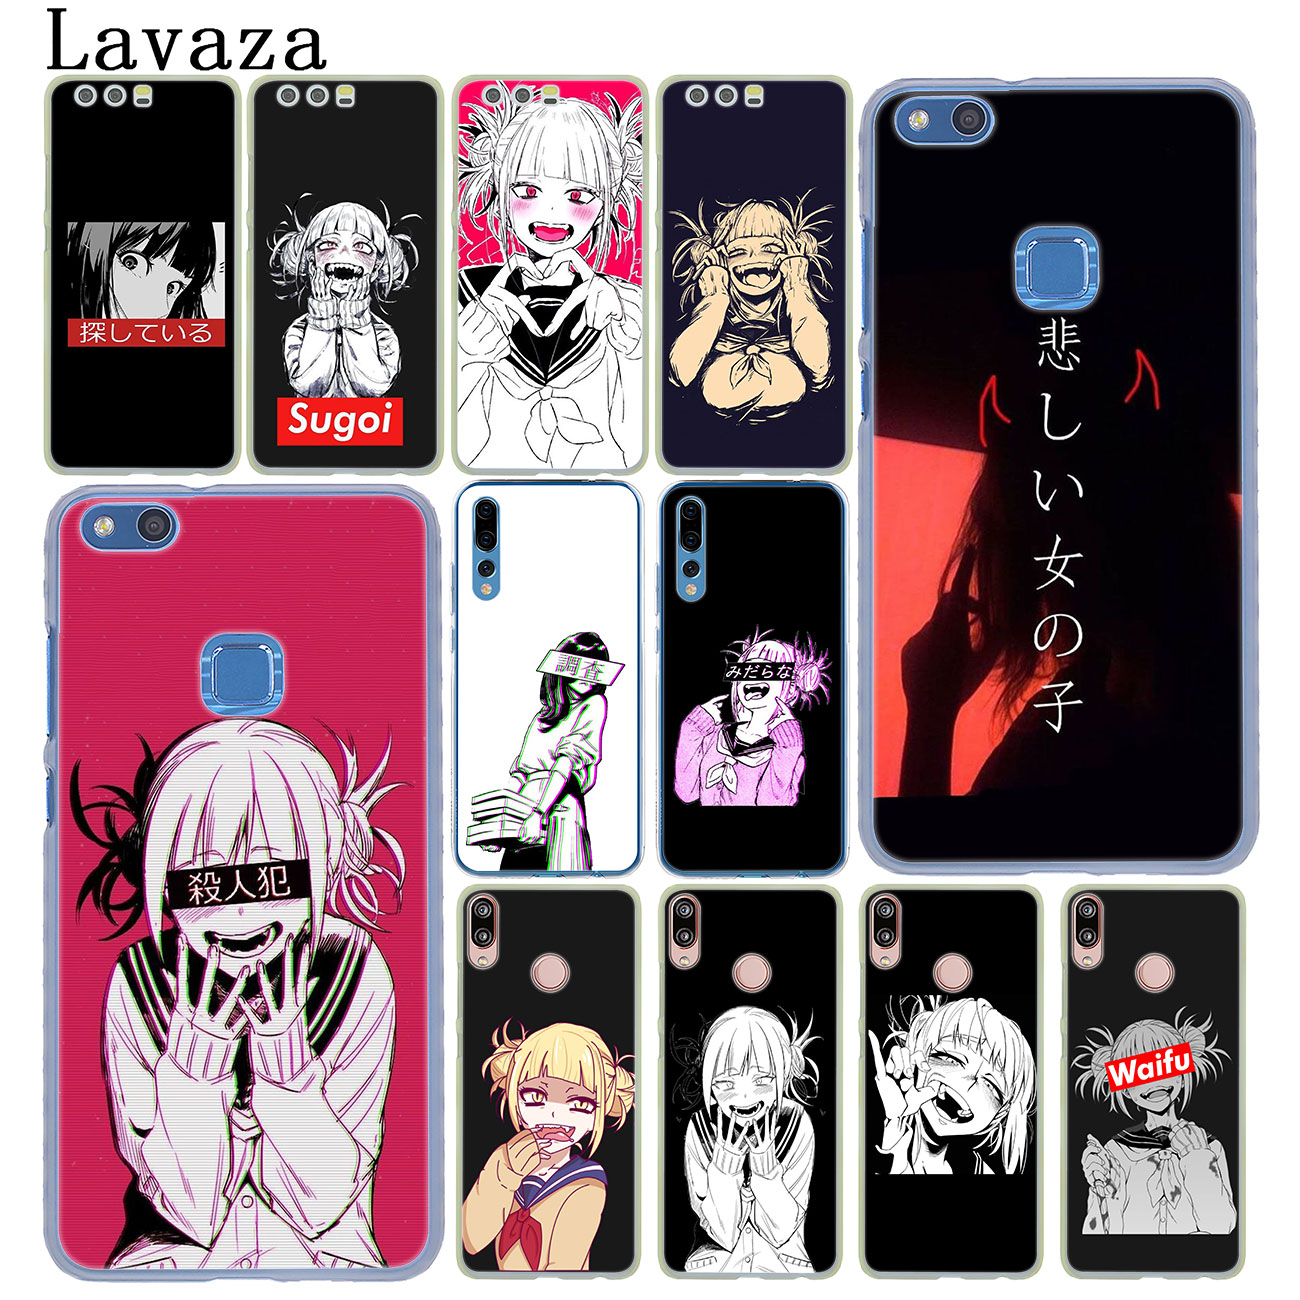 Lavaza Anime Himiko Toga Boku No Hero Academia <font><b>Case</b></font> for Huawei Y9 Y7 Y6 Prime 2019 <font><b>Honor</b></font> 20 8C 8X 8 <font><b>9</b></font> 9X 10 <font><b>Lite</b></font> 7C 7X 6A 7A Pro image